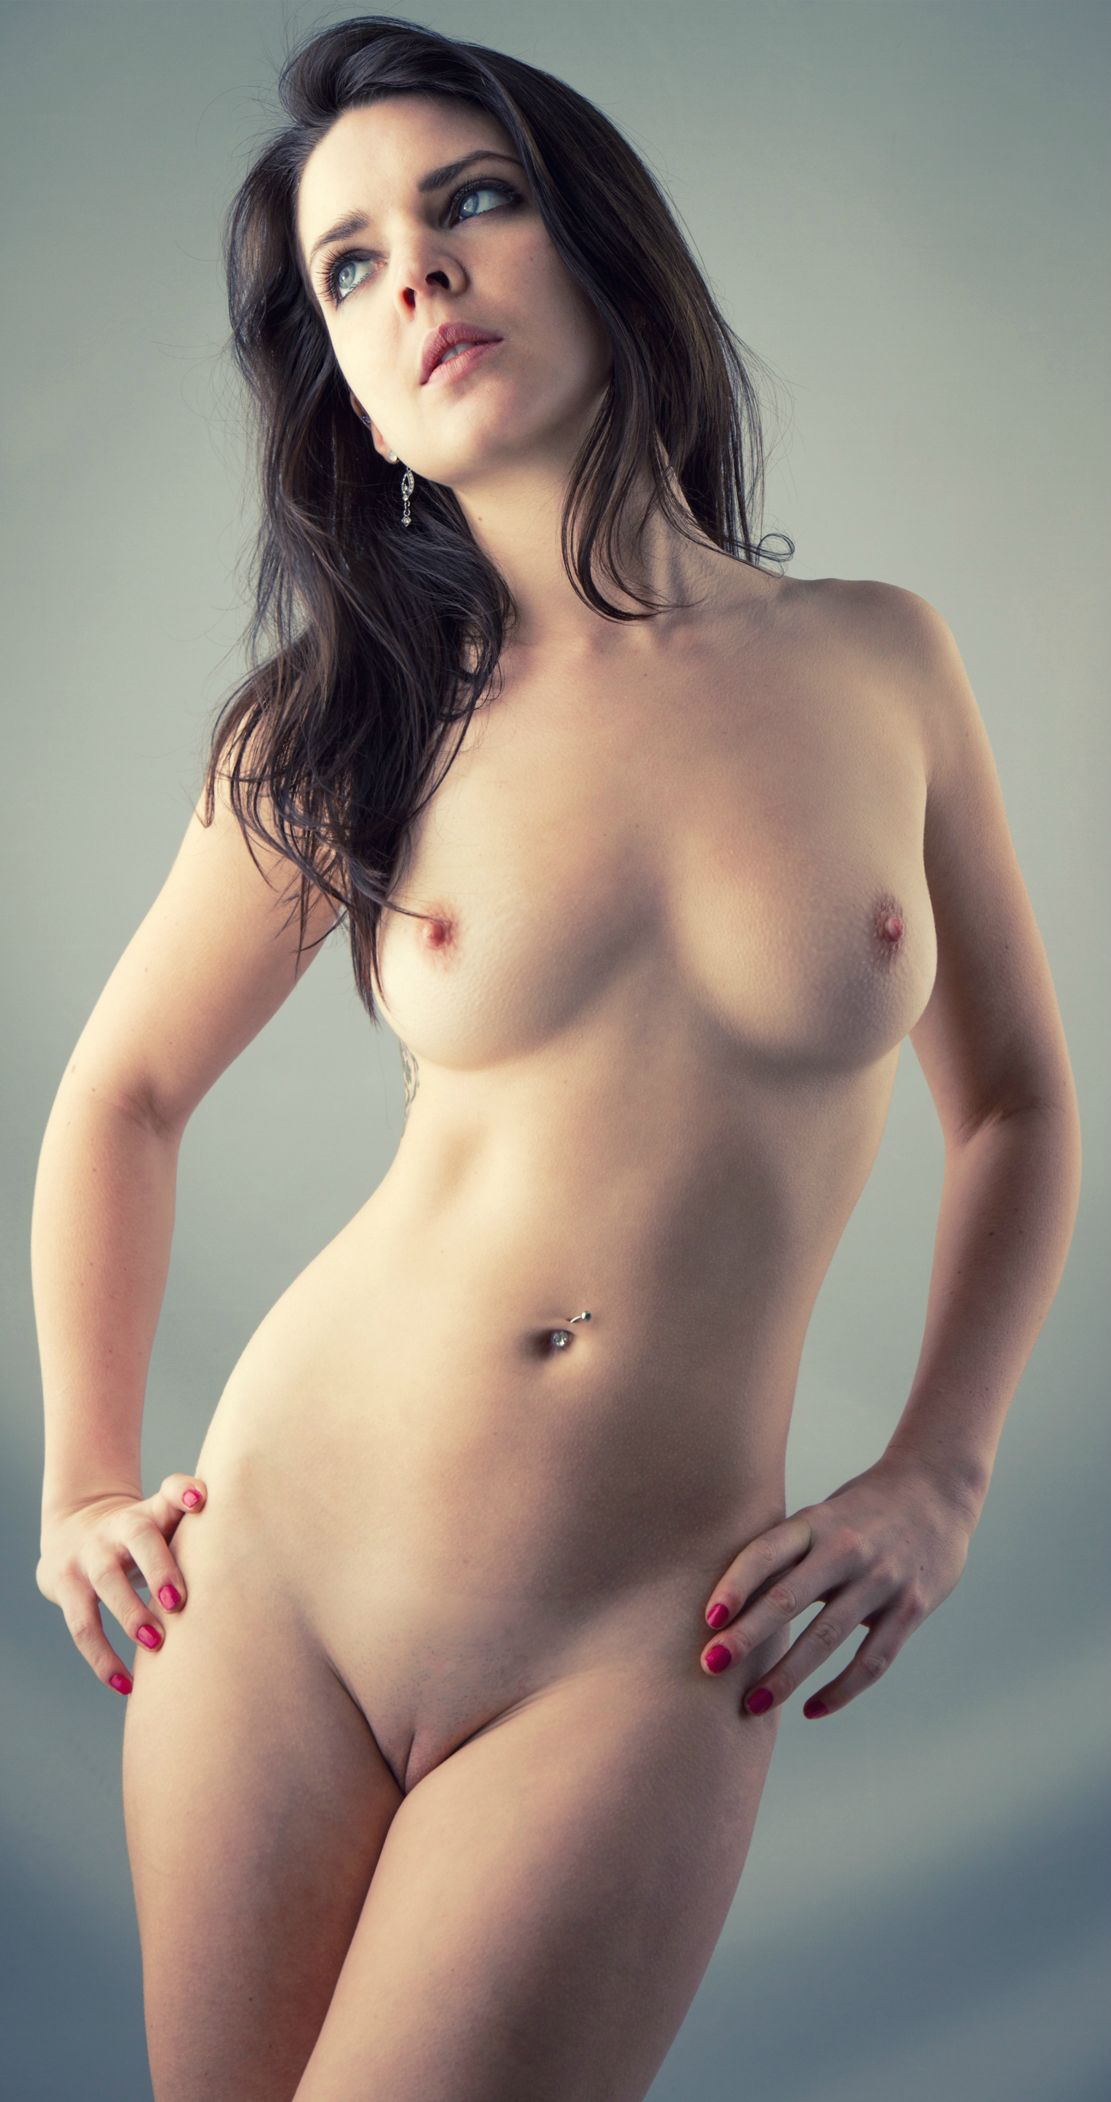 Nude beauty girl Erotic Pictures